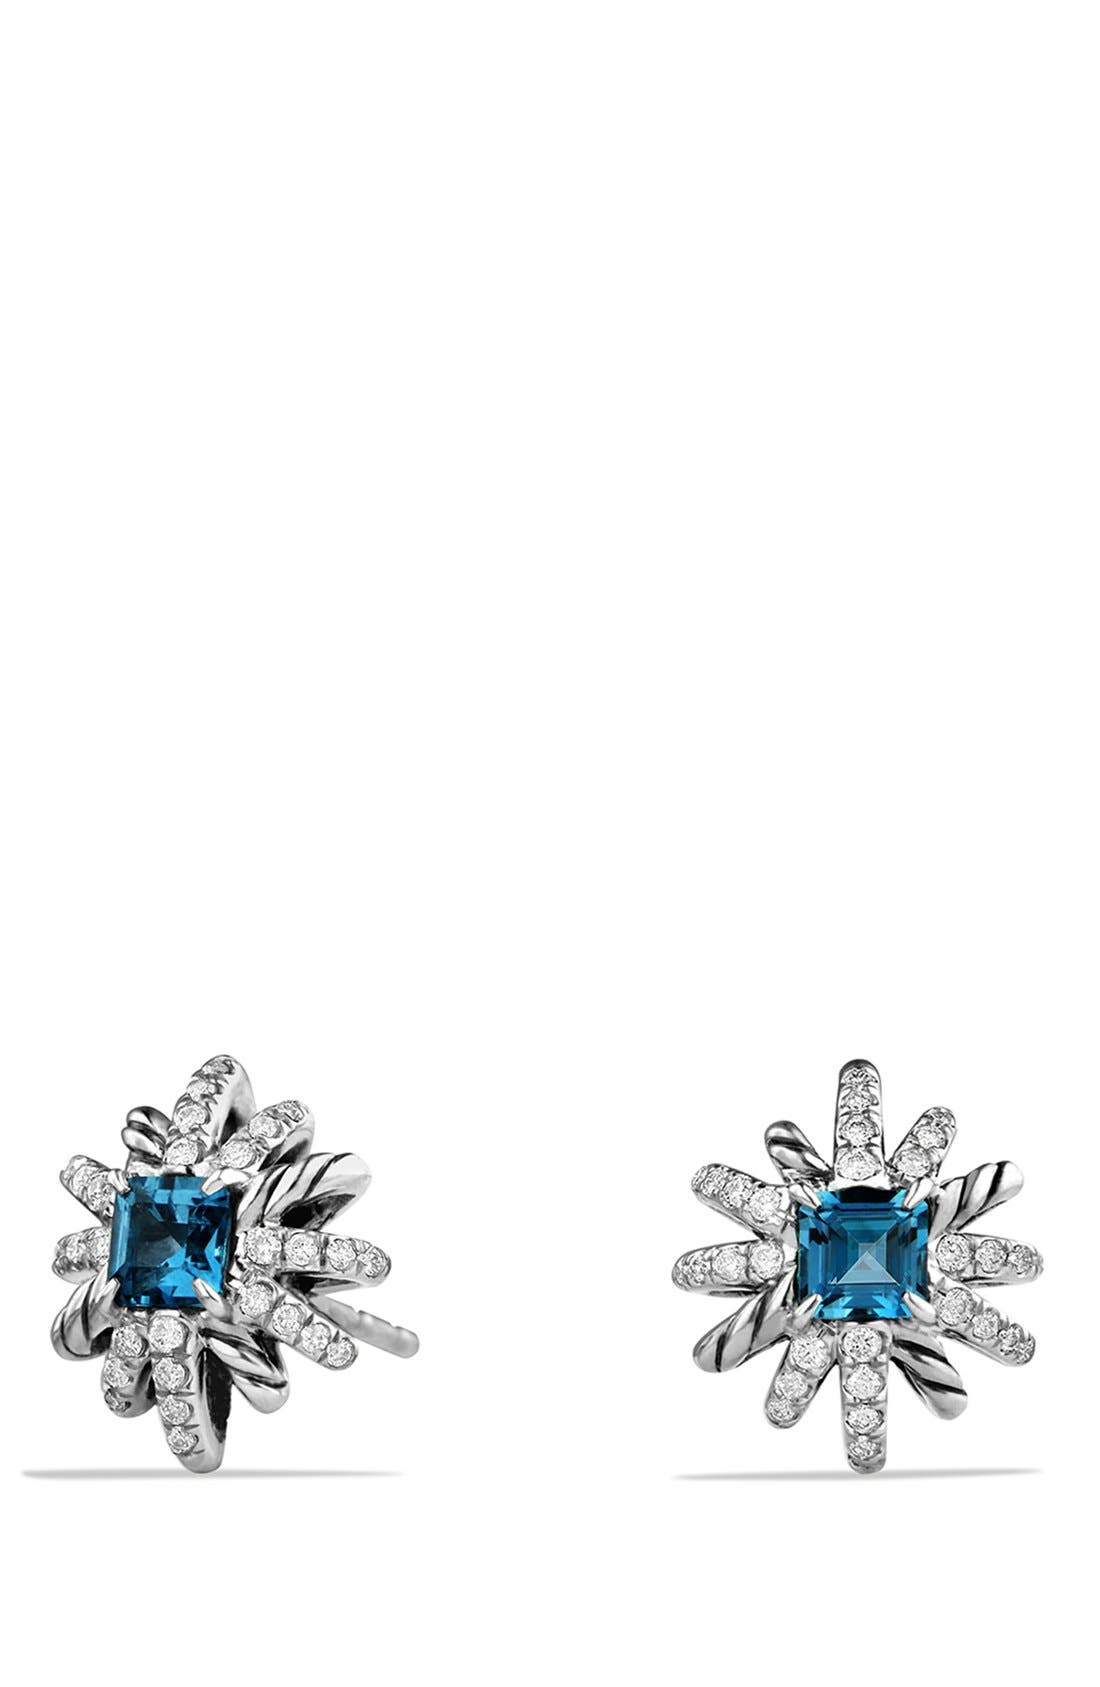 'Starburst' Earrings,                         Main,                         color, HAMPTON BLUE TOPAZ